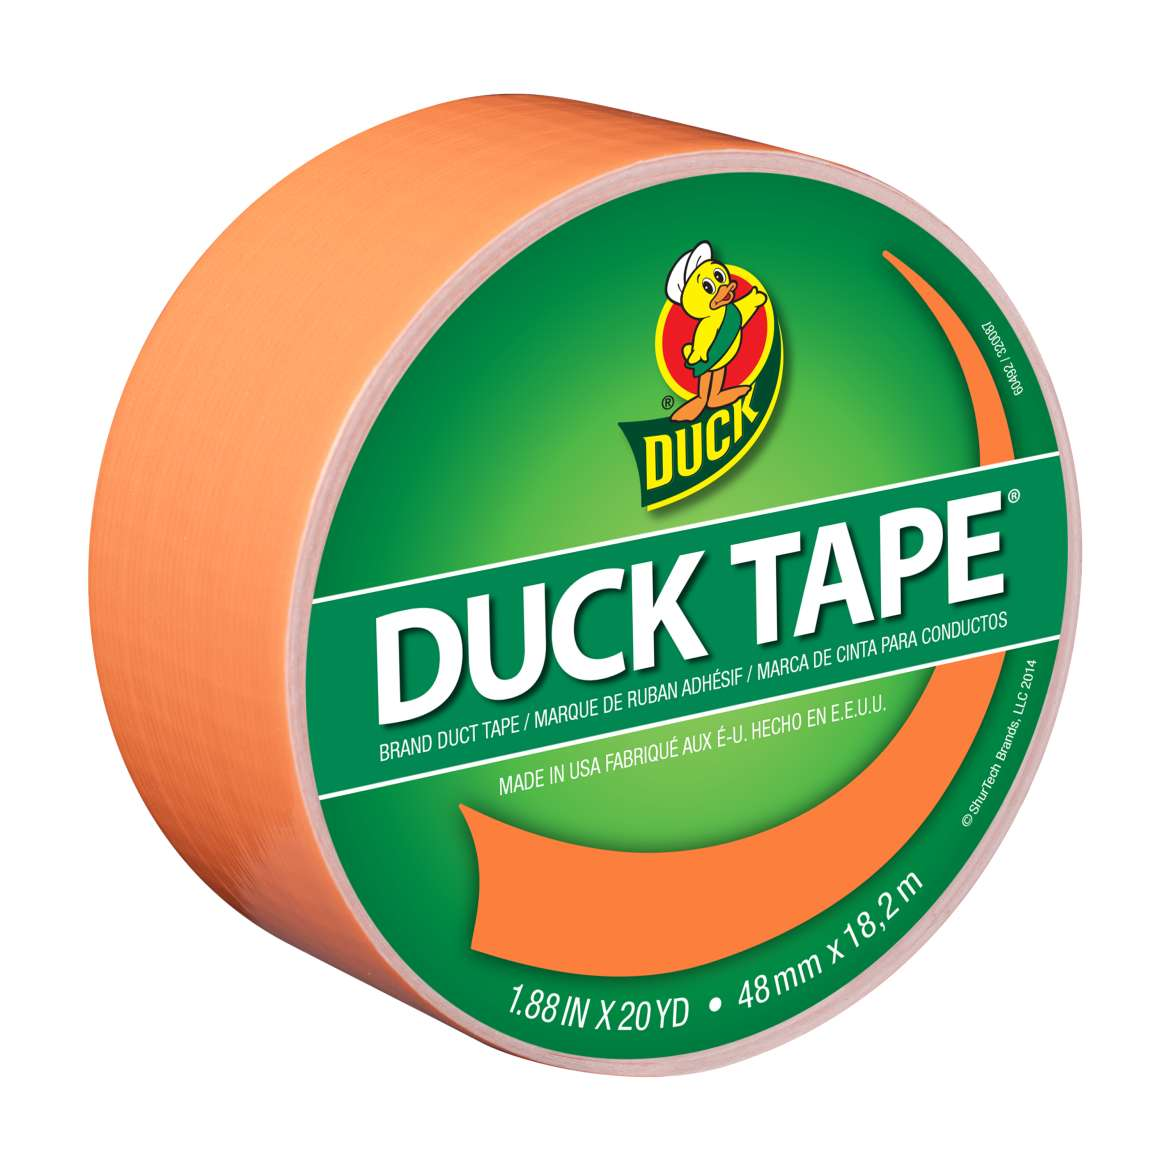 Color Duck Tape Brand Duct Tape - Orange, 1.88 in. x 20 yd.